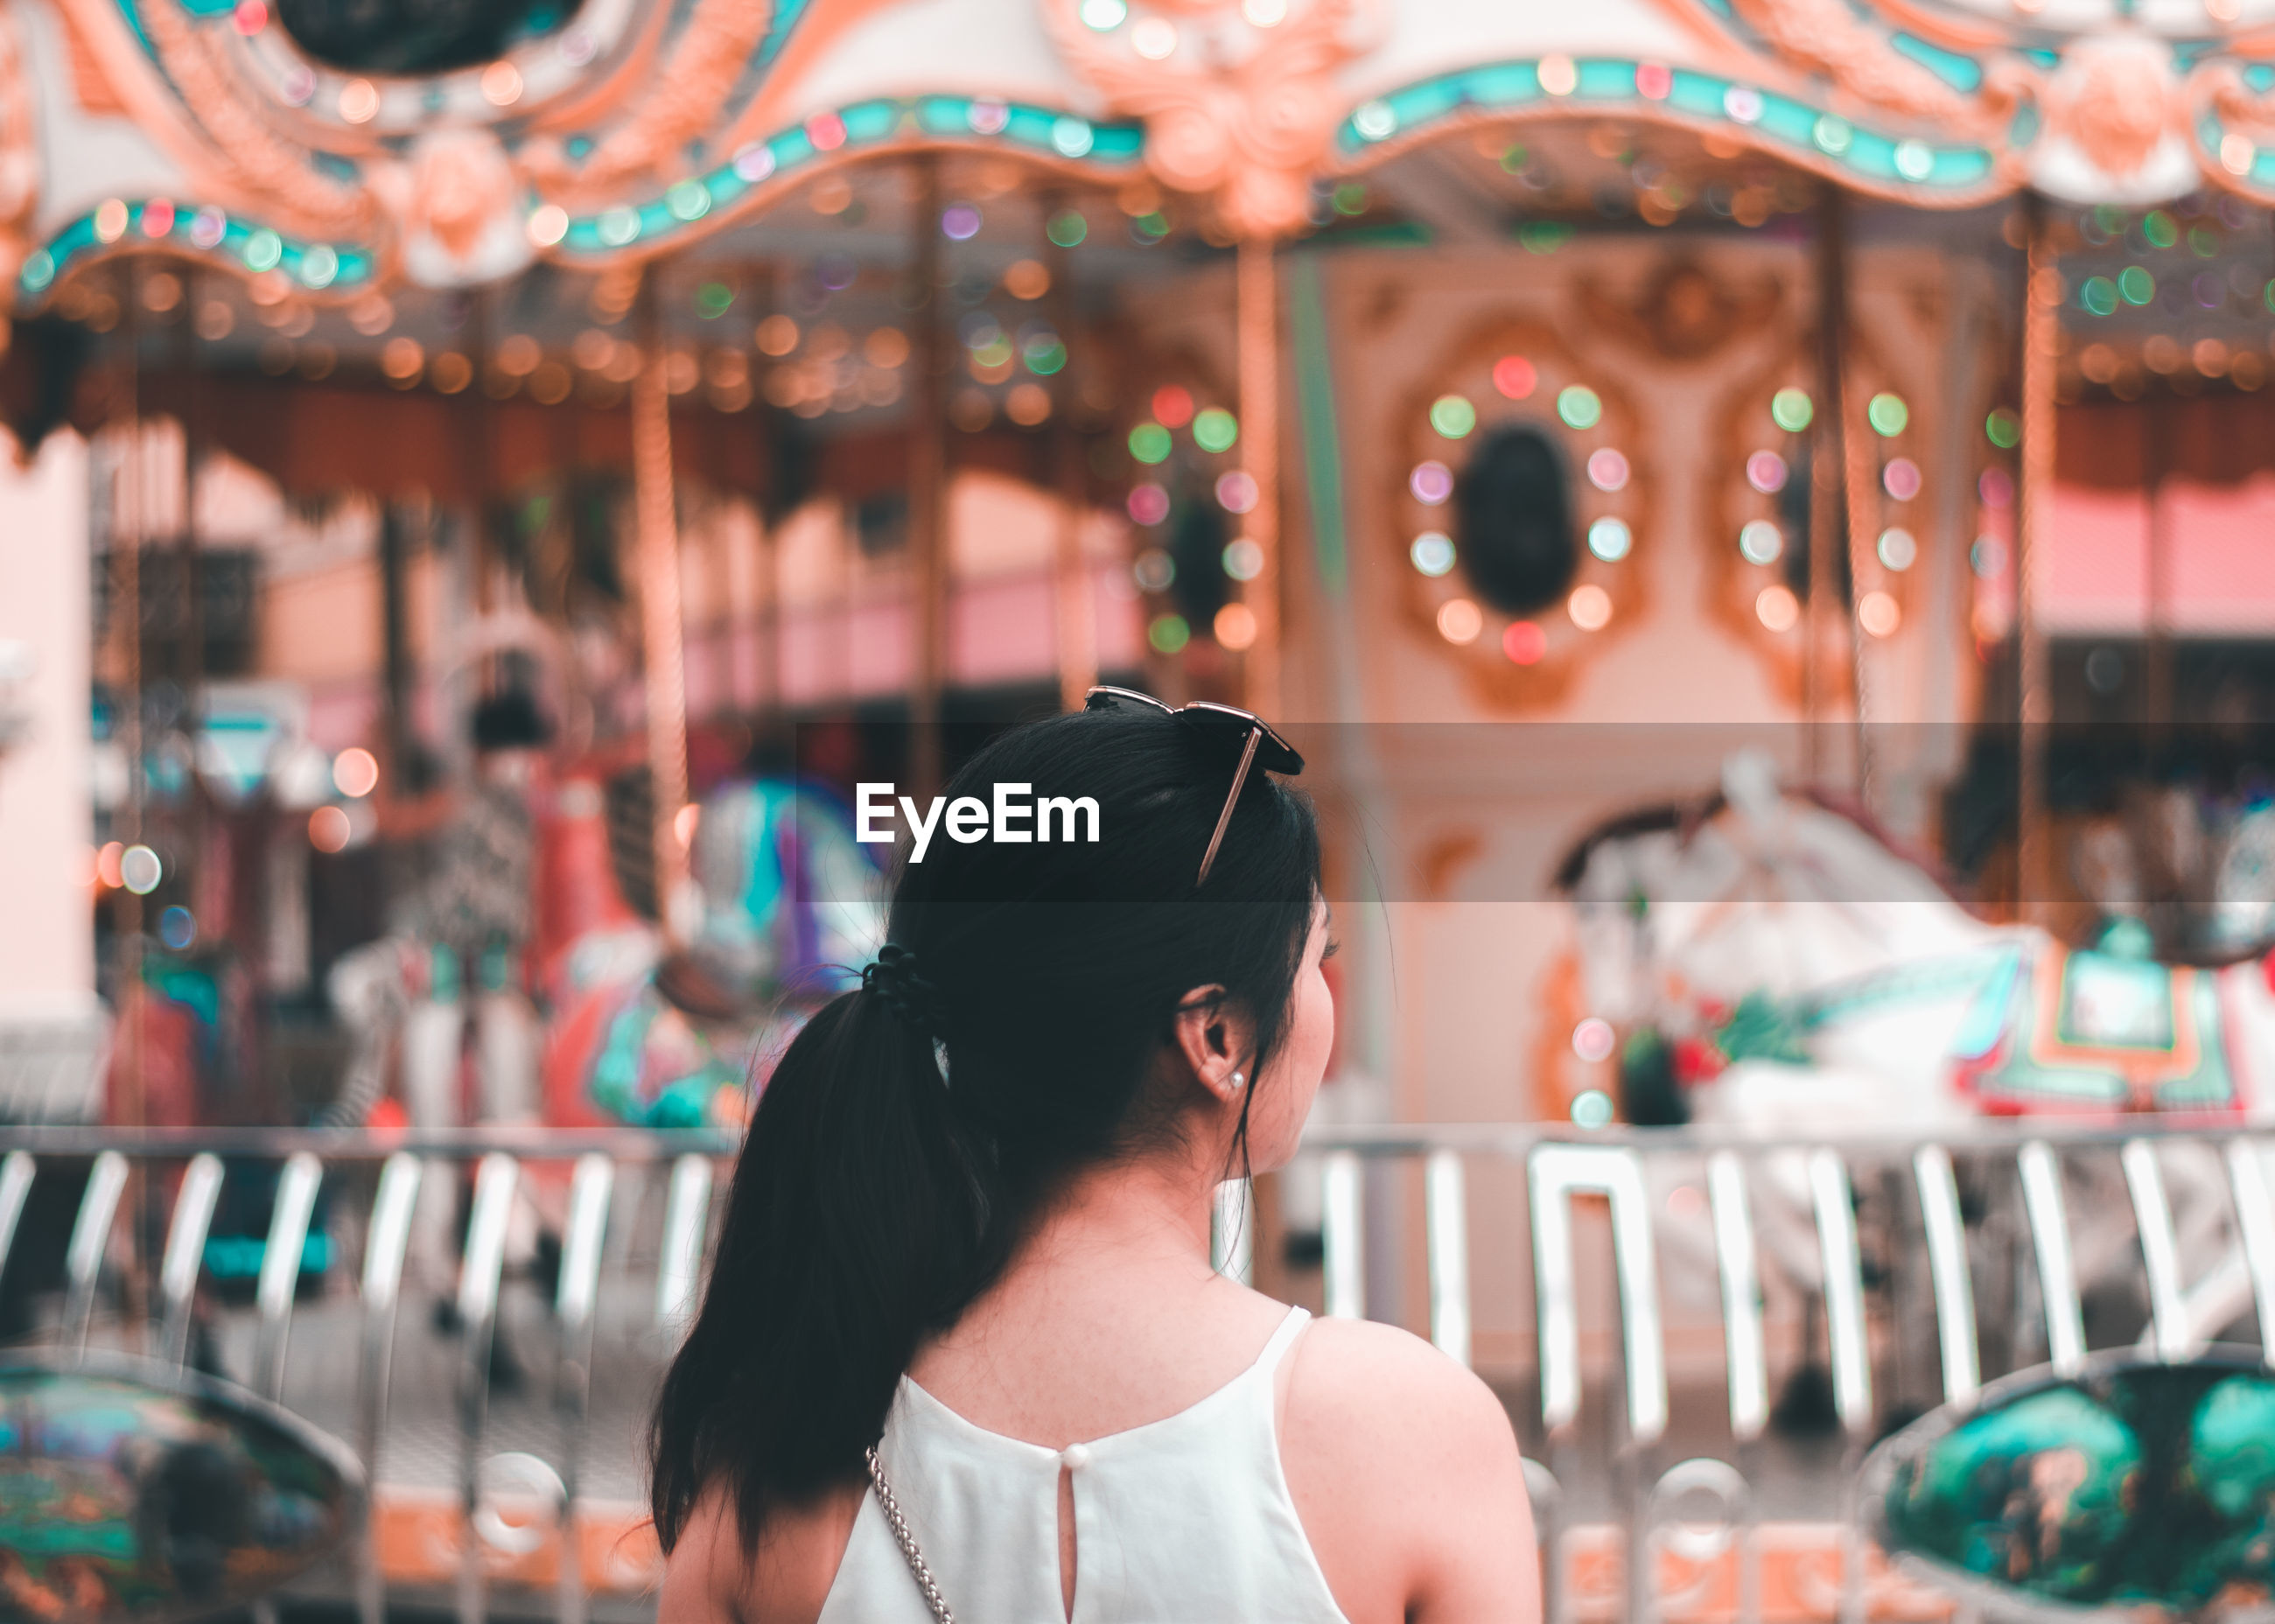 Rear view of woman against carousel in amusement park